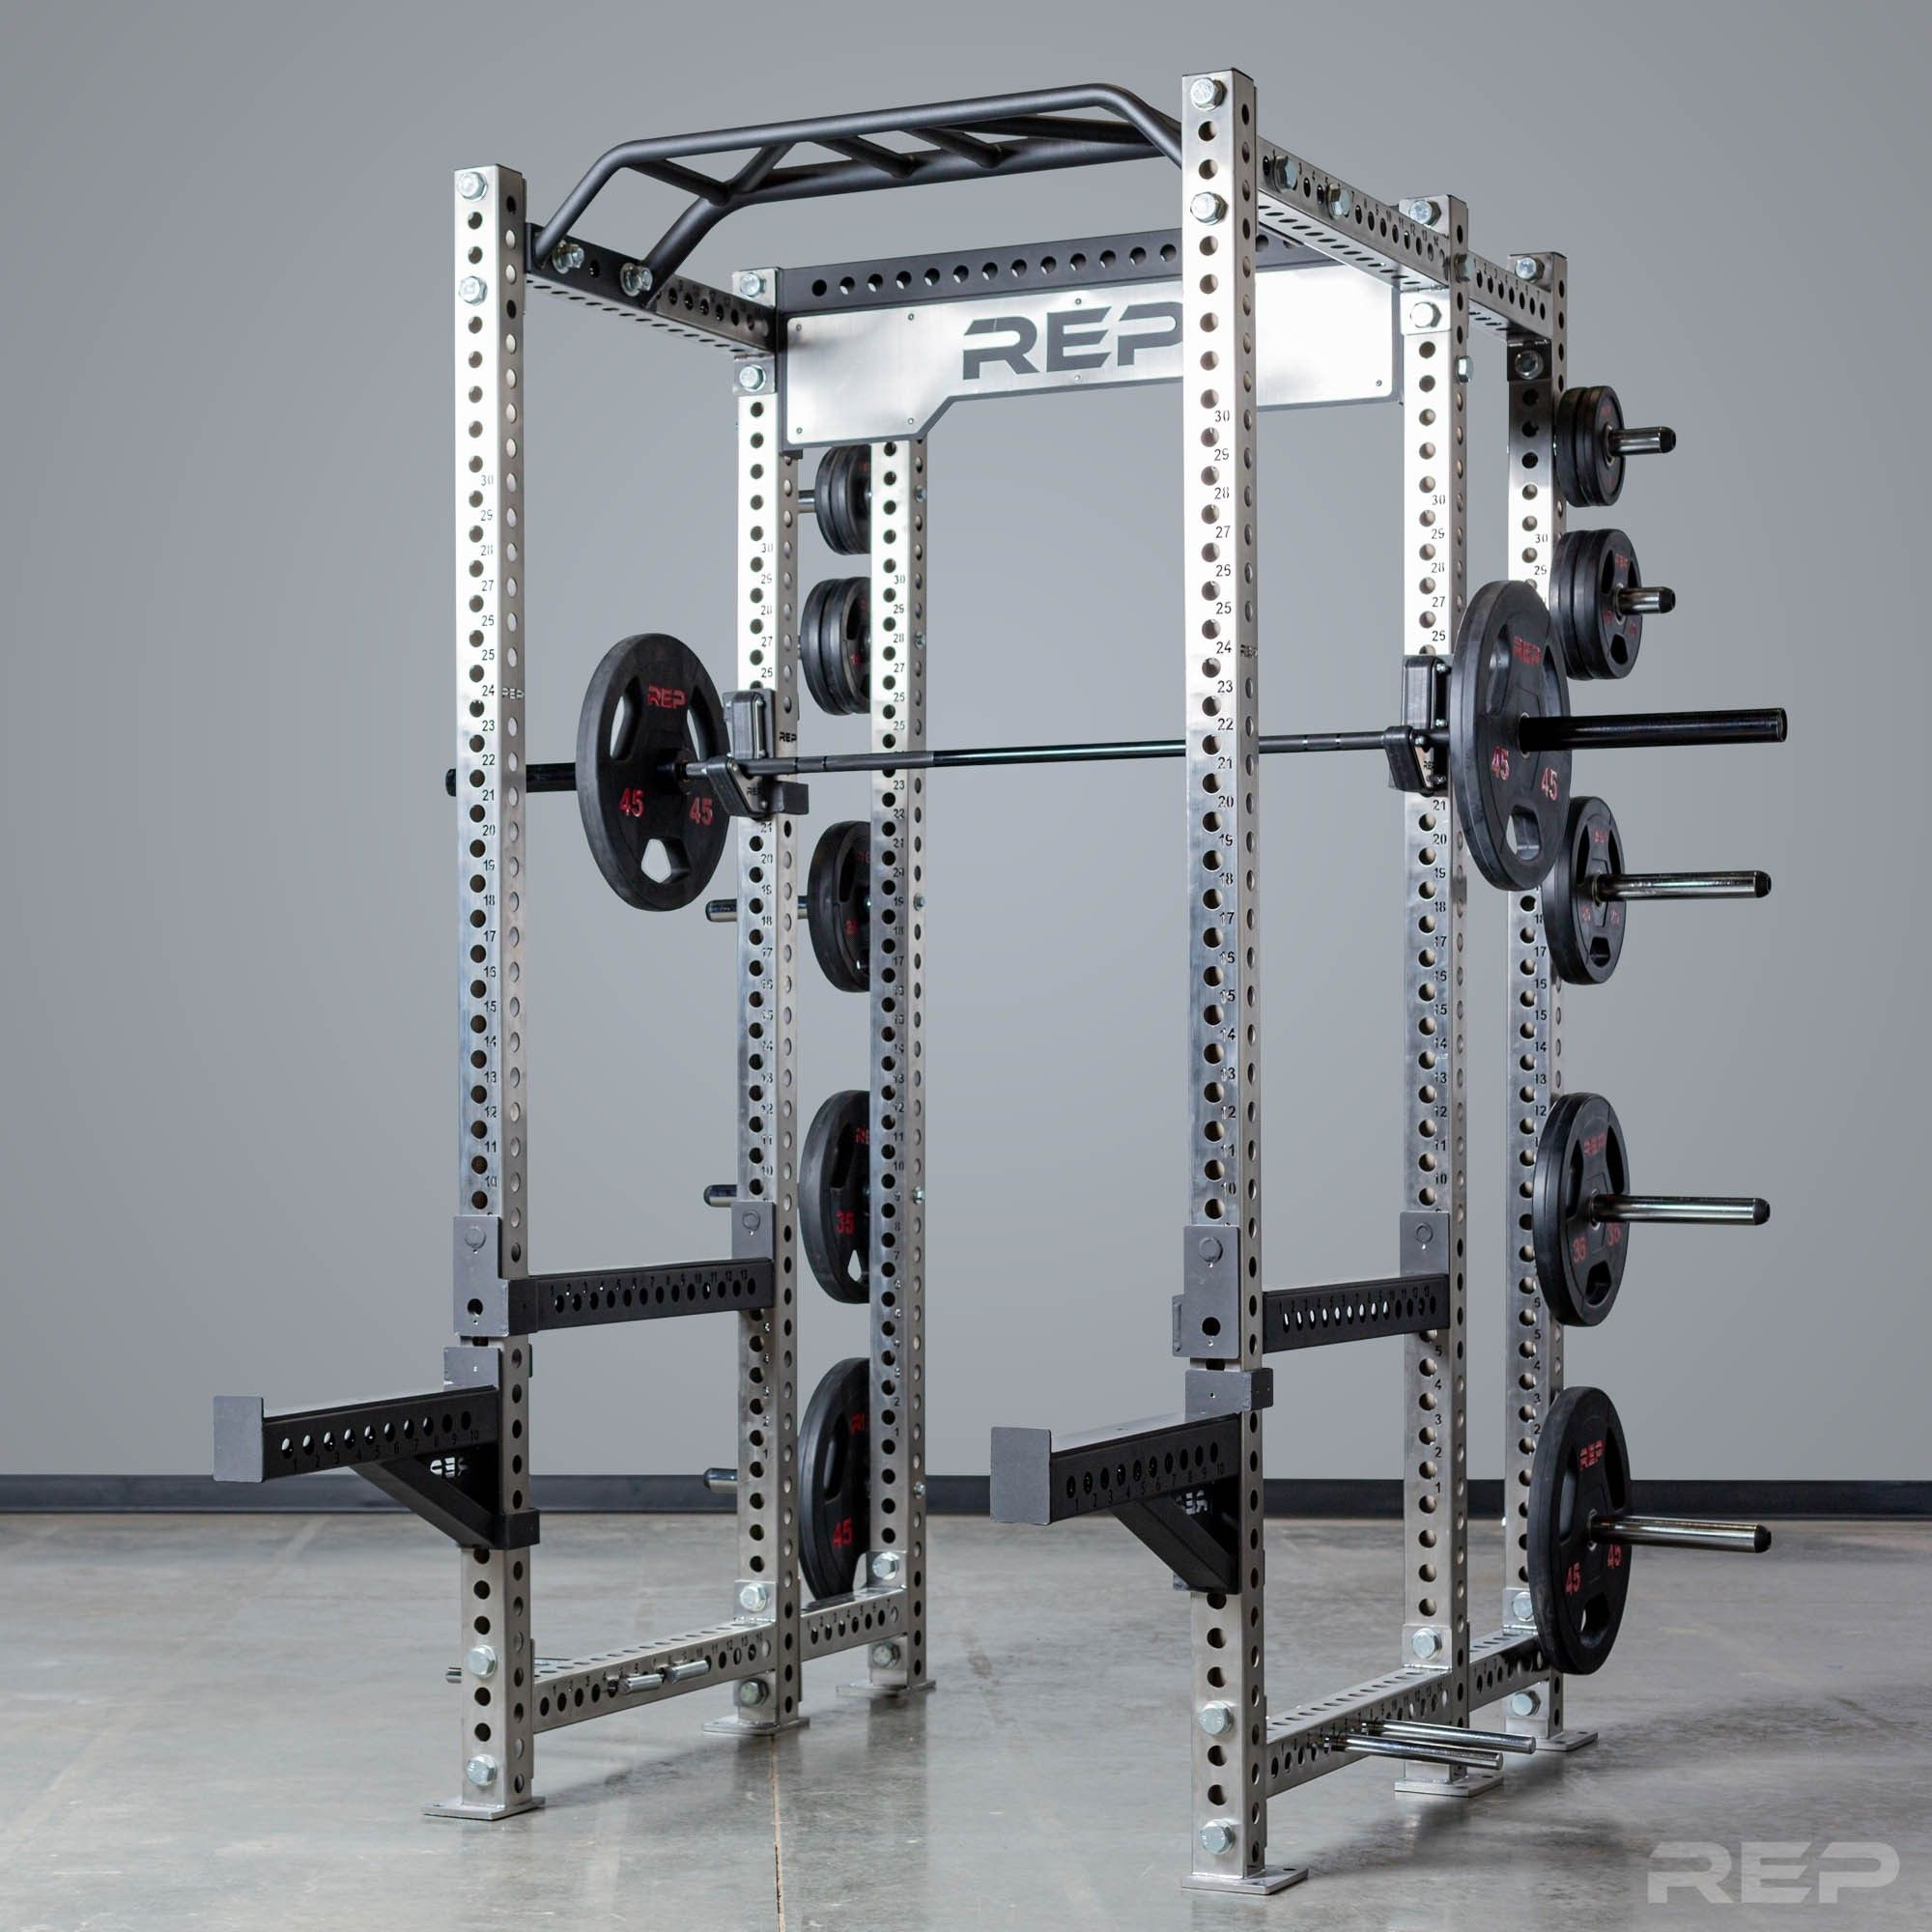 Rep Pr 5000 V2 Power Rack Power Rack Gym Rack Rogue Fitness Equipment